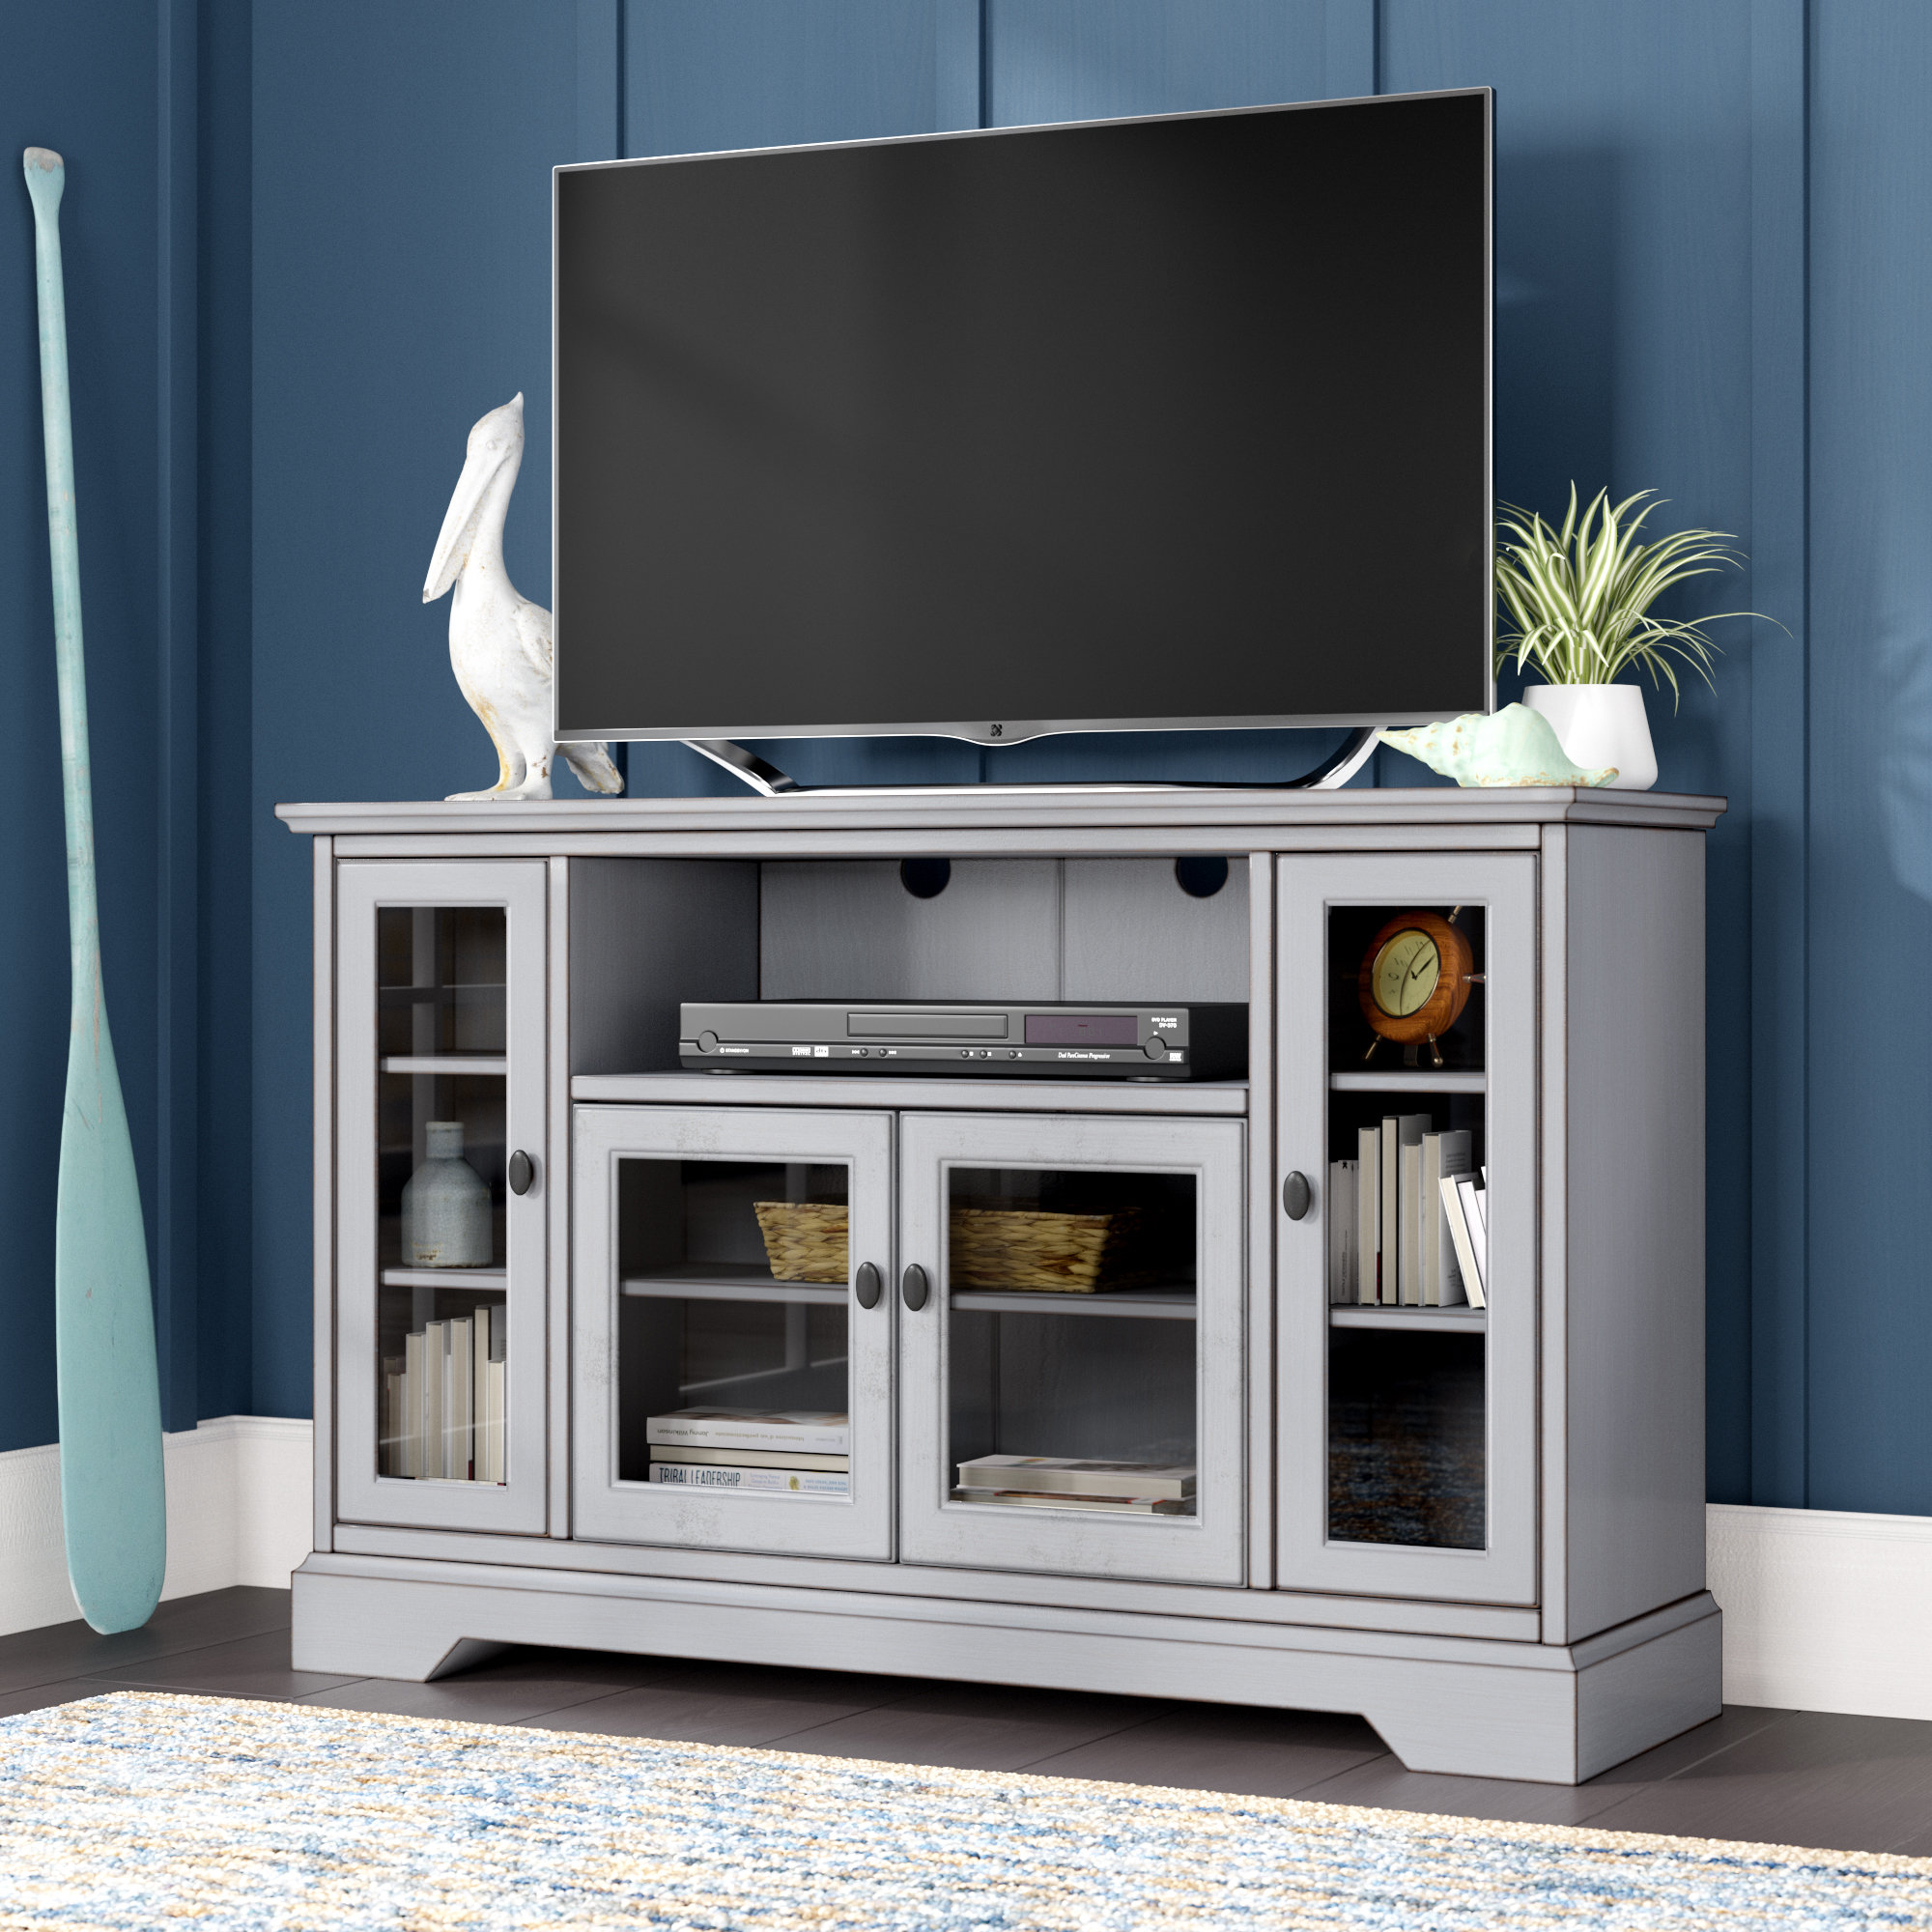 Tv Stands | Joss & Main for Annabelle Black 70 Inch Tv Stands (Image 26 of 30)